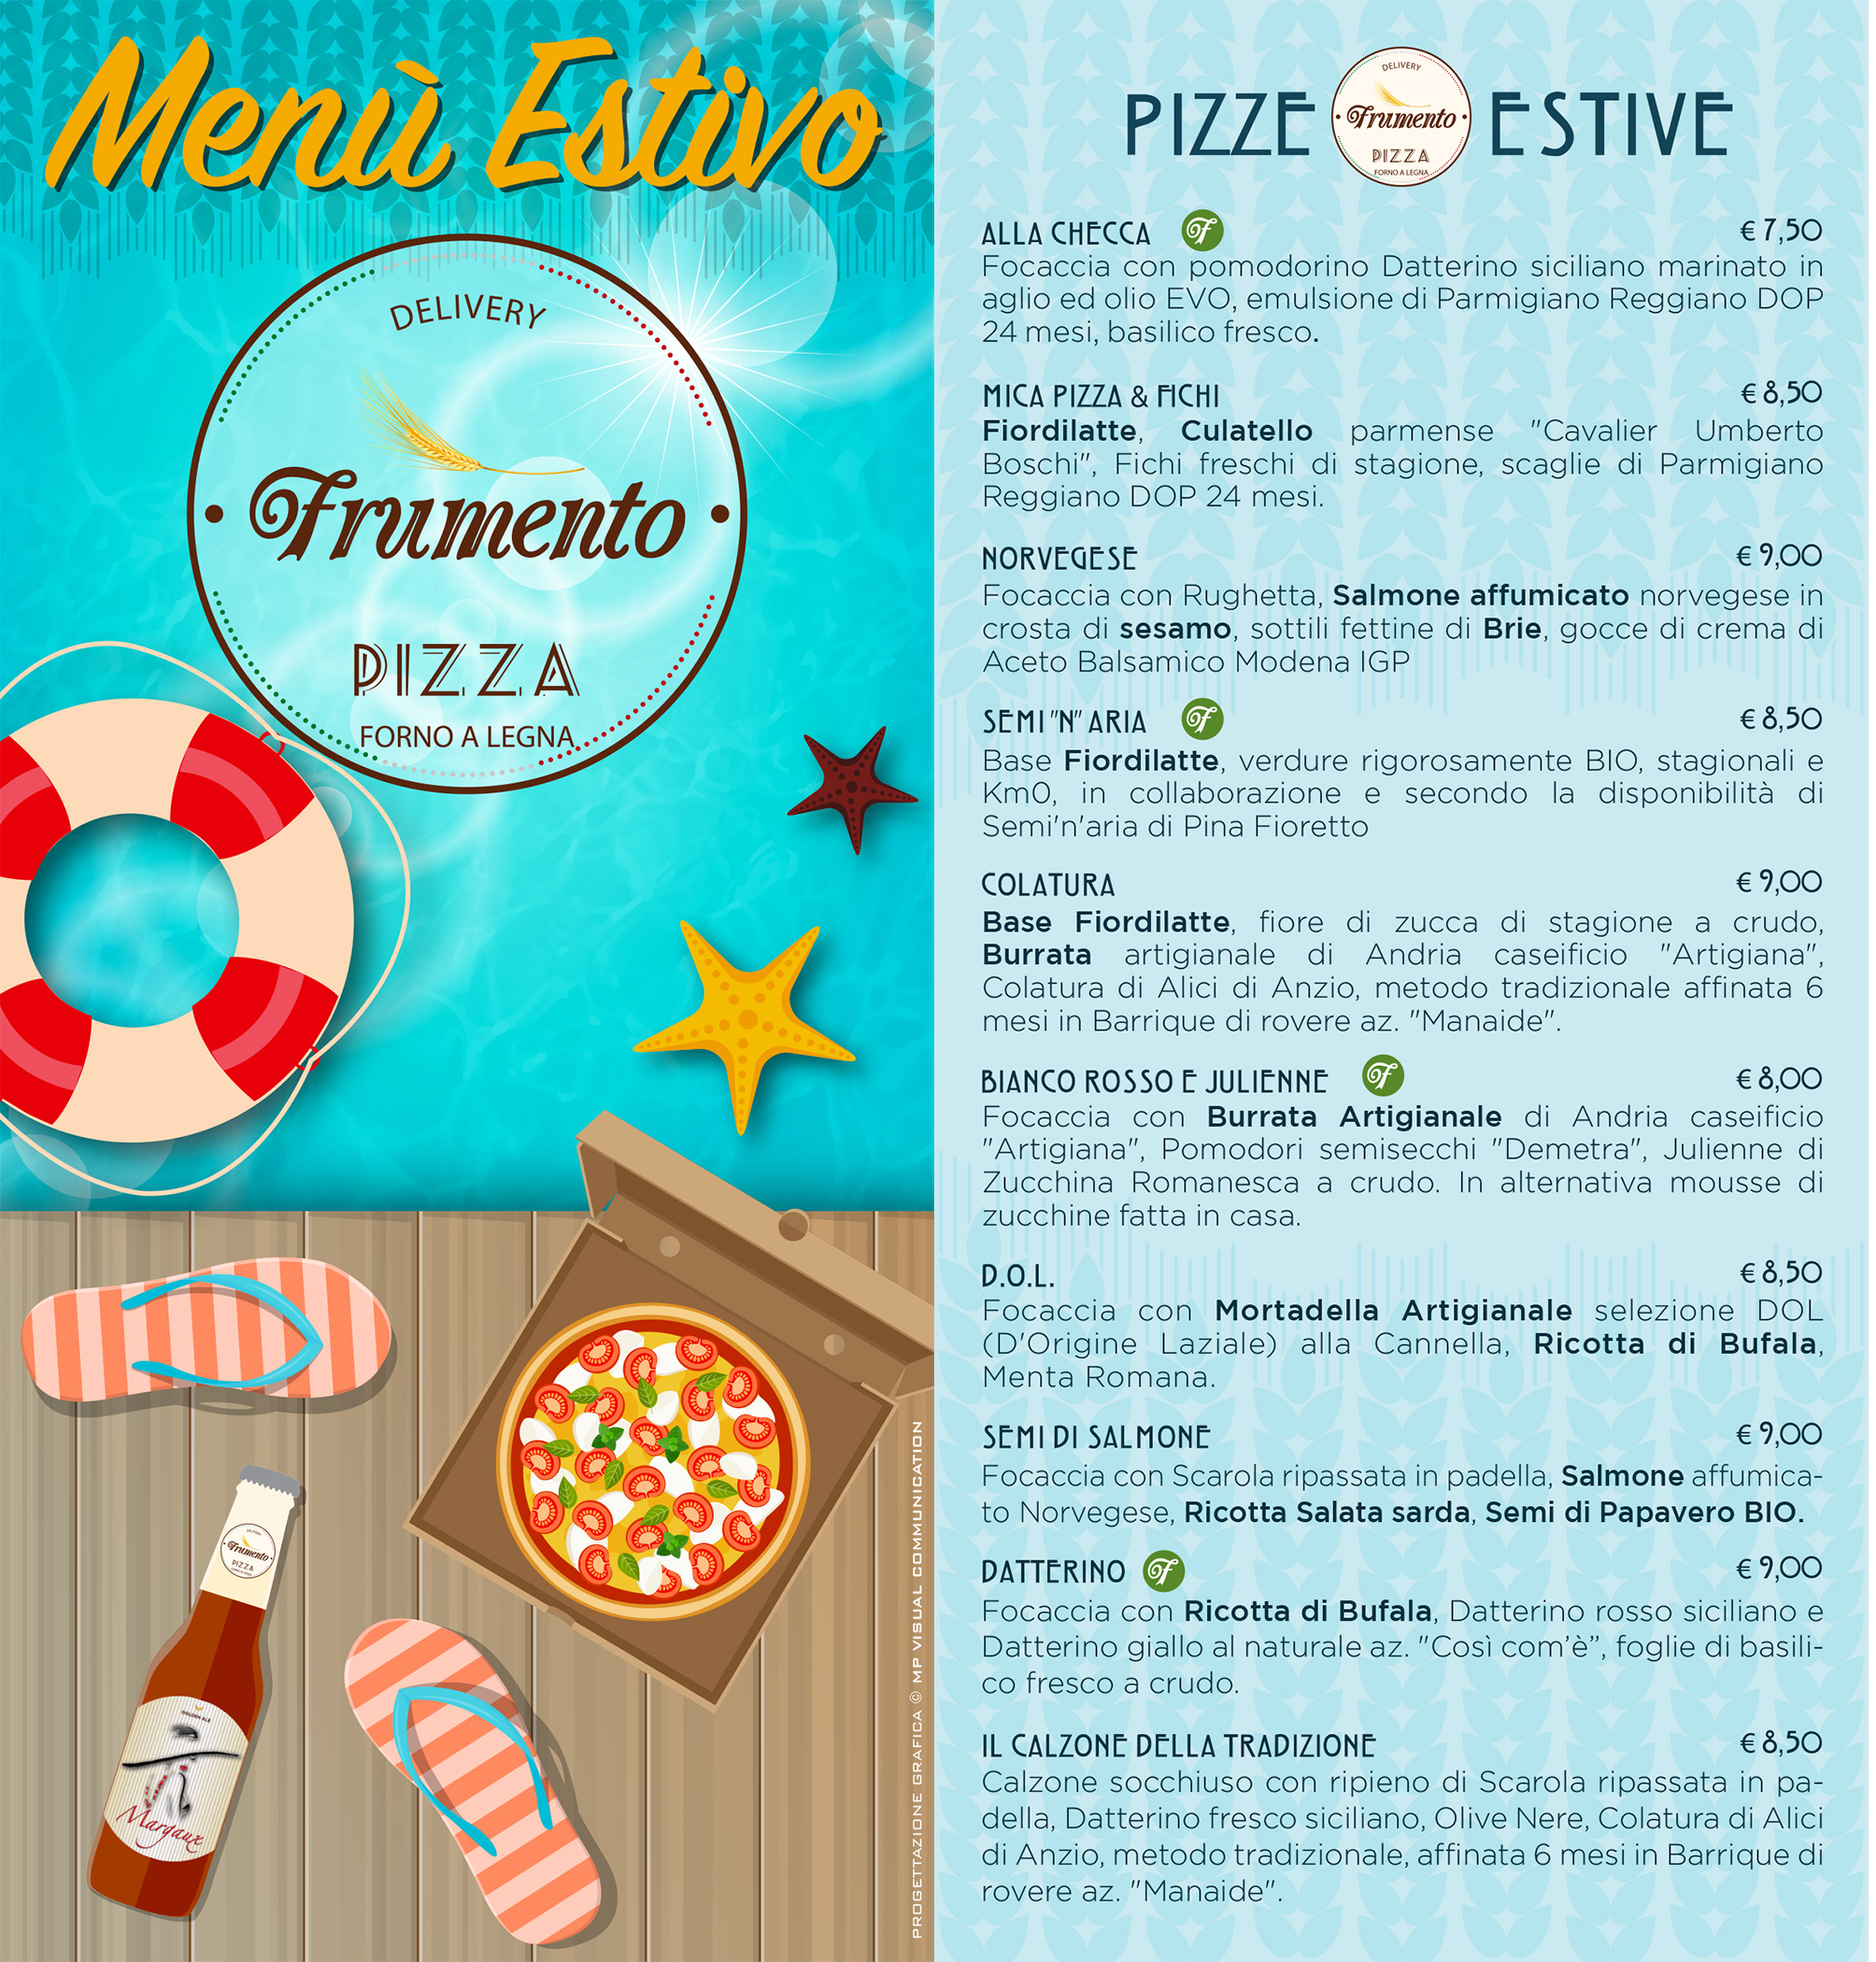 MENU ESTATE 2017 – Pizzeria Frumento